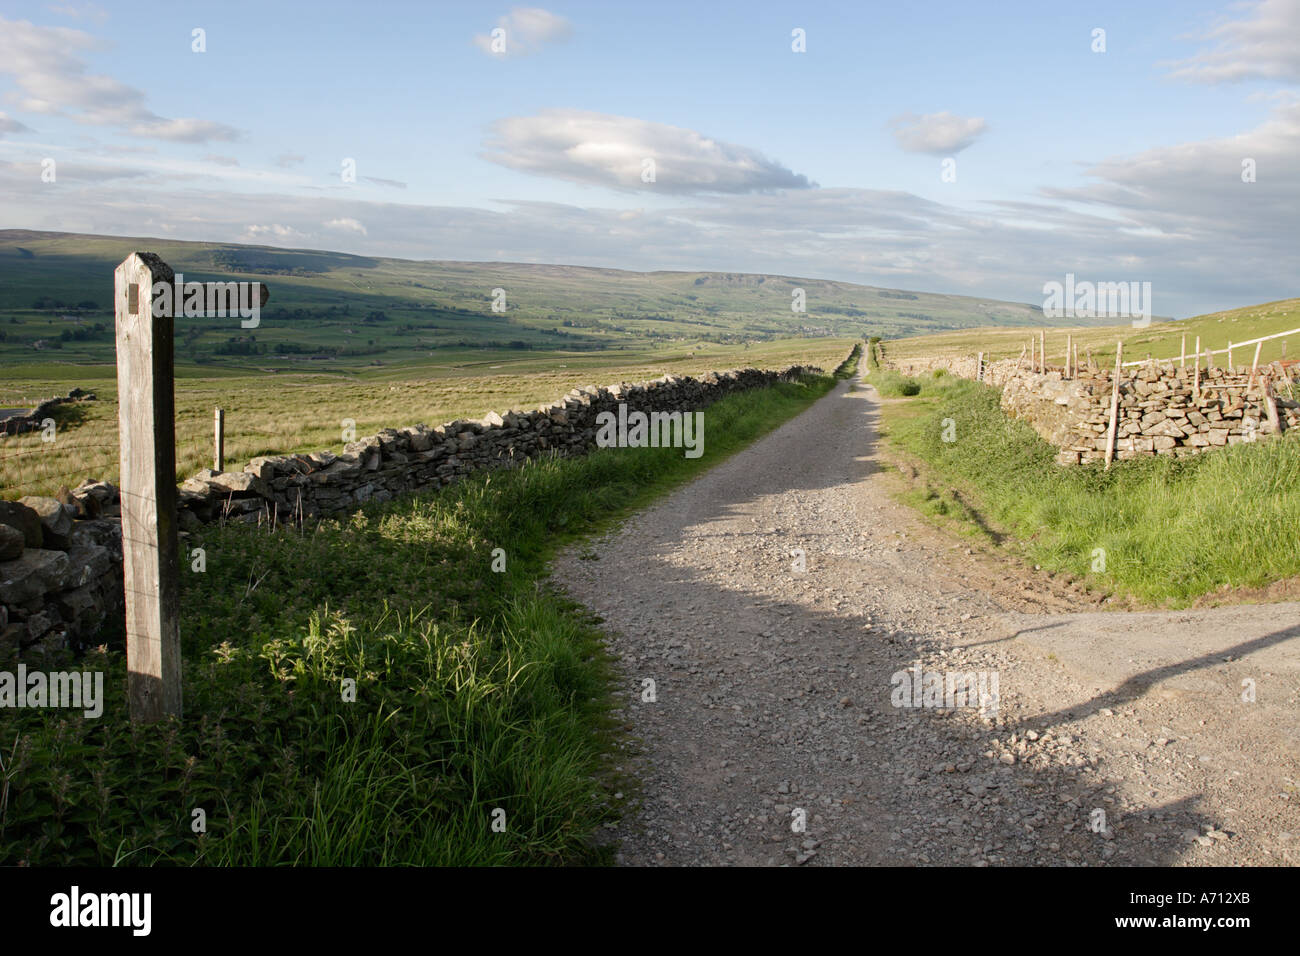 Cam High Road, Wensleydale, Yorkshire Dales National Park Stock Photo